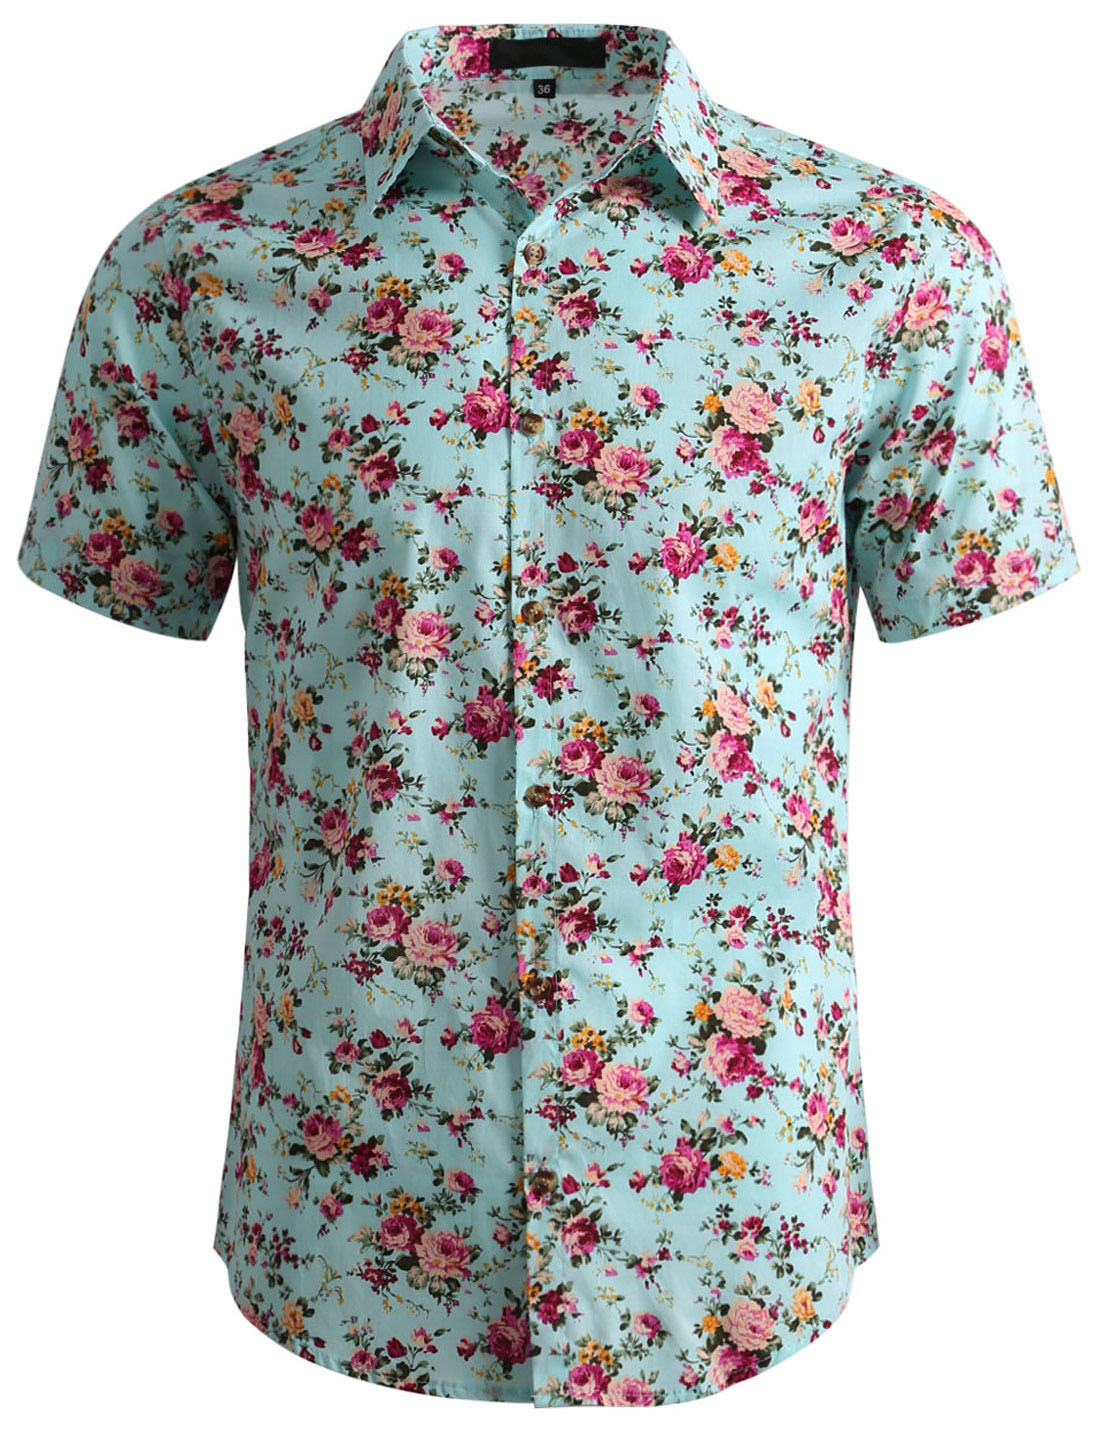 Men Short Sleeve Button Front Flower Print Cotton Beach Hawaiian Shirt Mint L